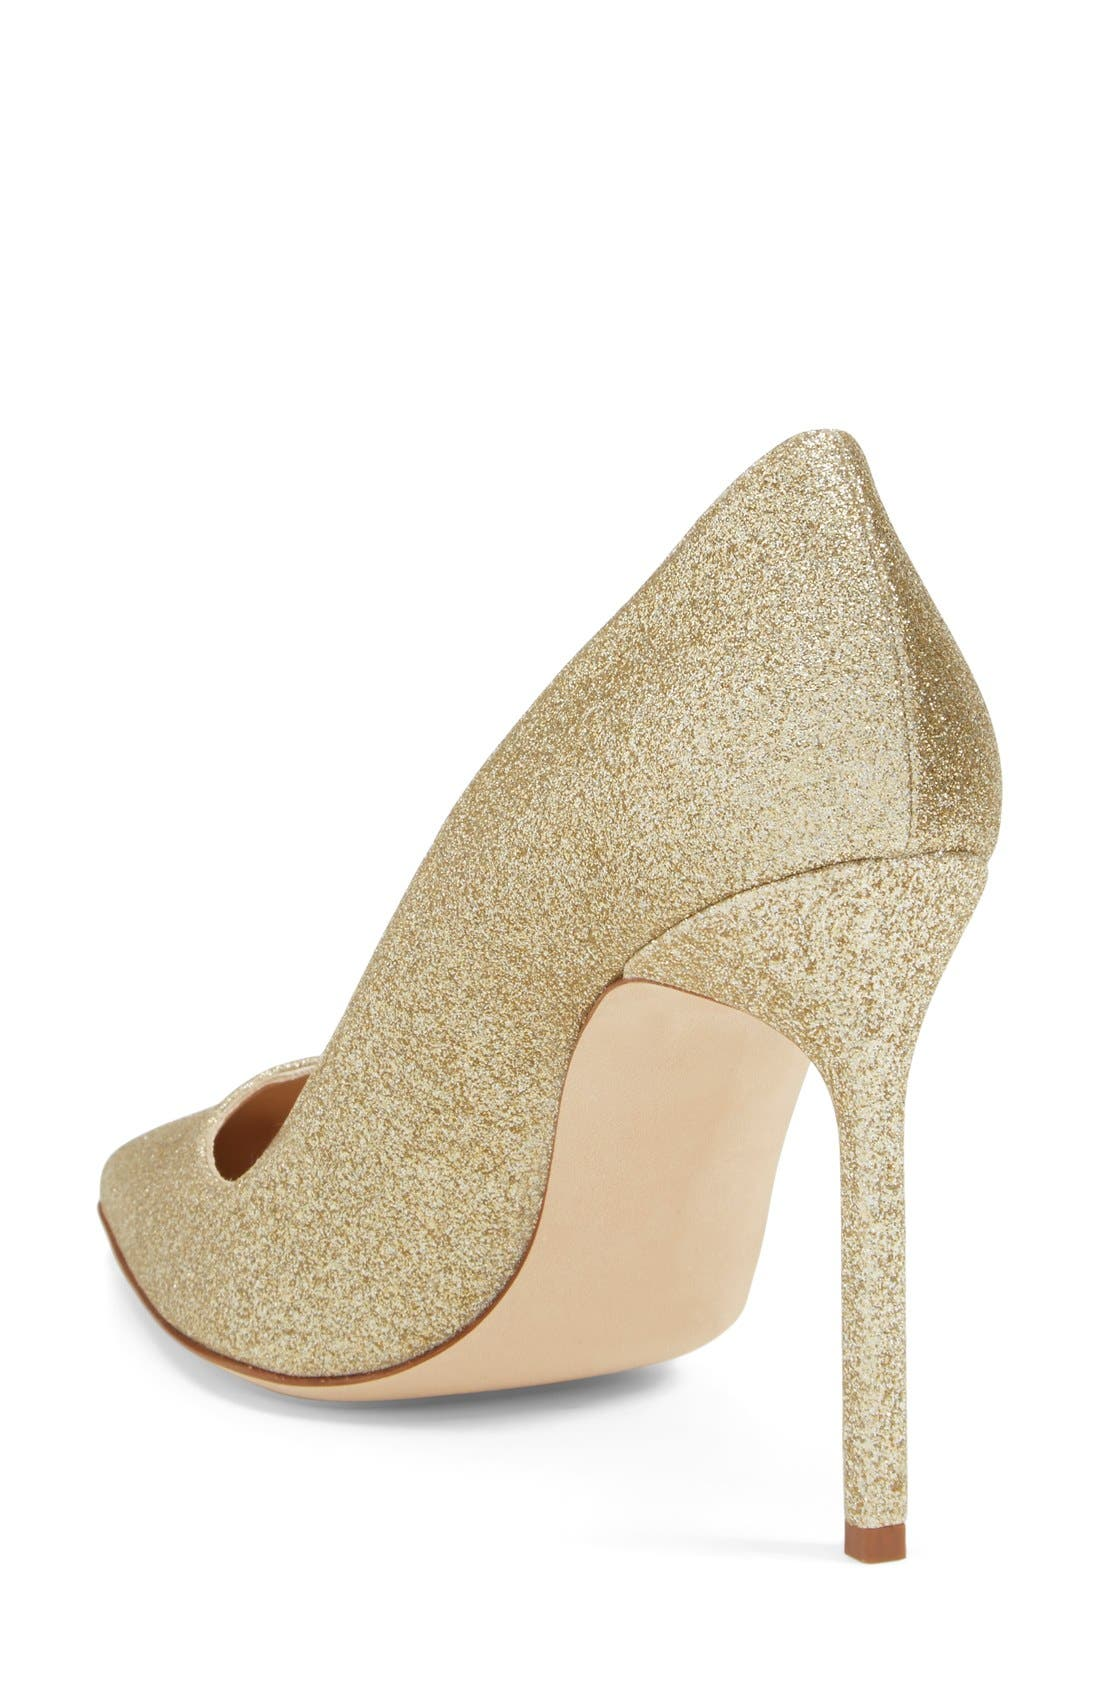 BB Pointy Toe Pump,                             Alternate thumbnail 29, color,